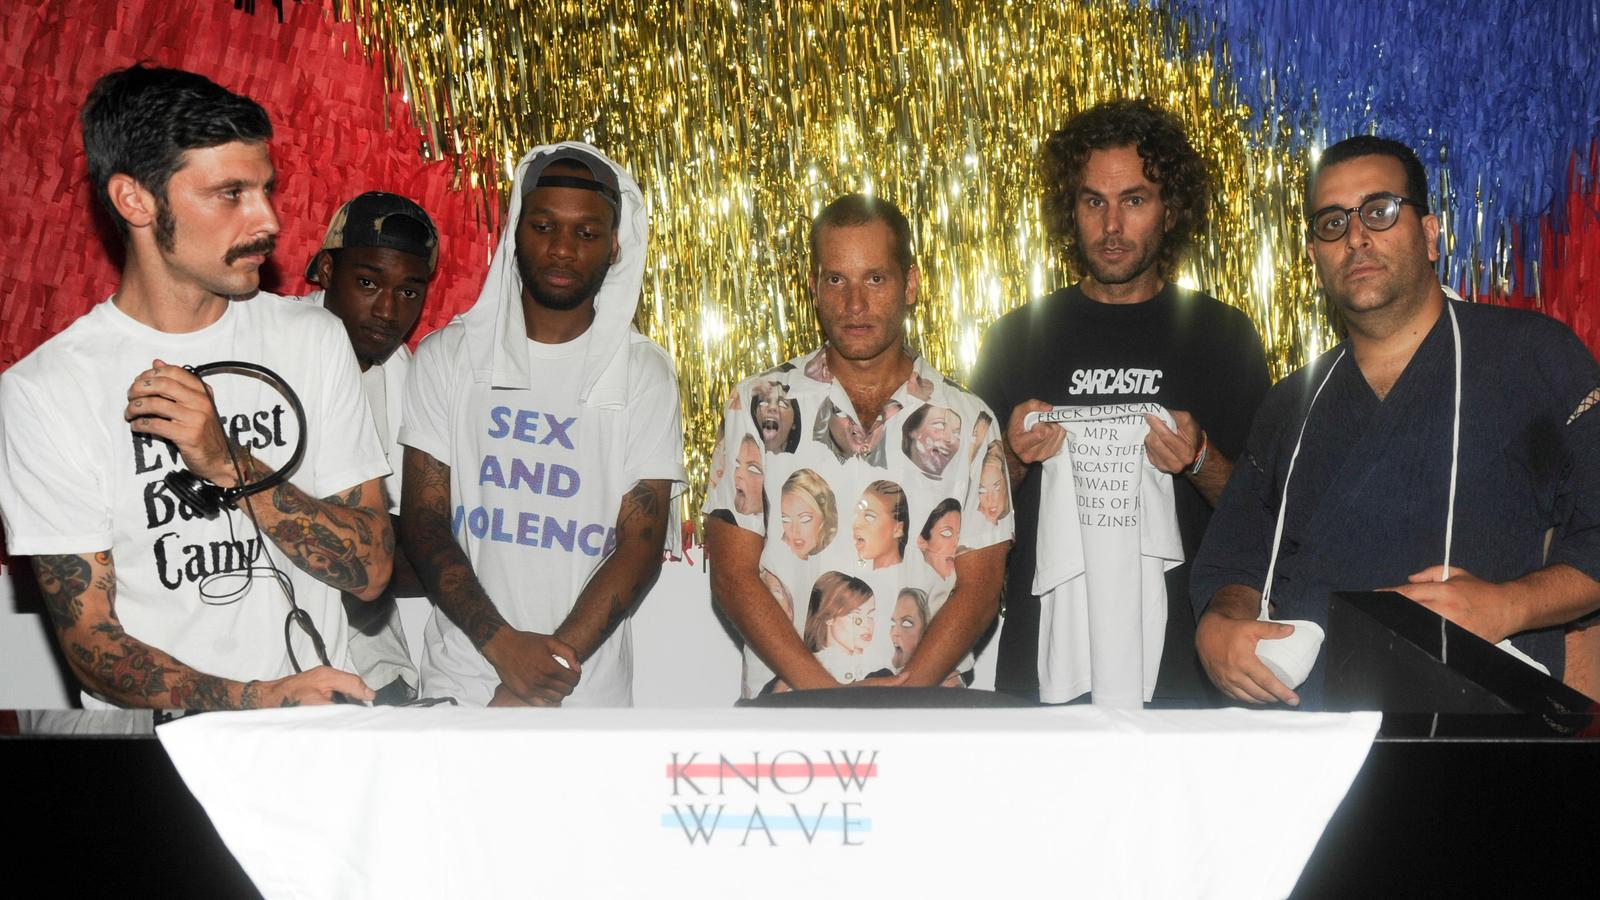 D Js Aaron Bondaroff And Know Wave Crew At Converse Mmm Launch Event Bfa Original